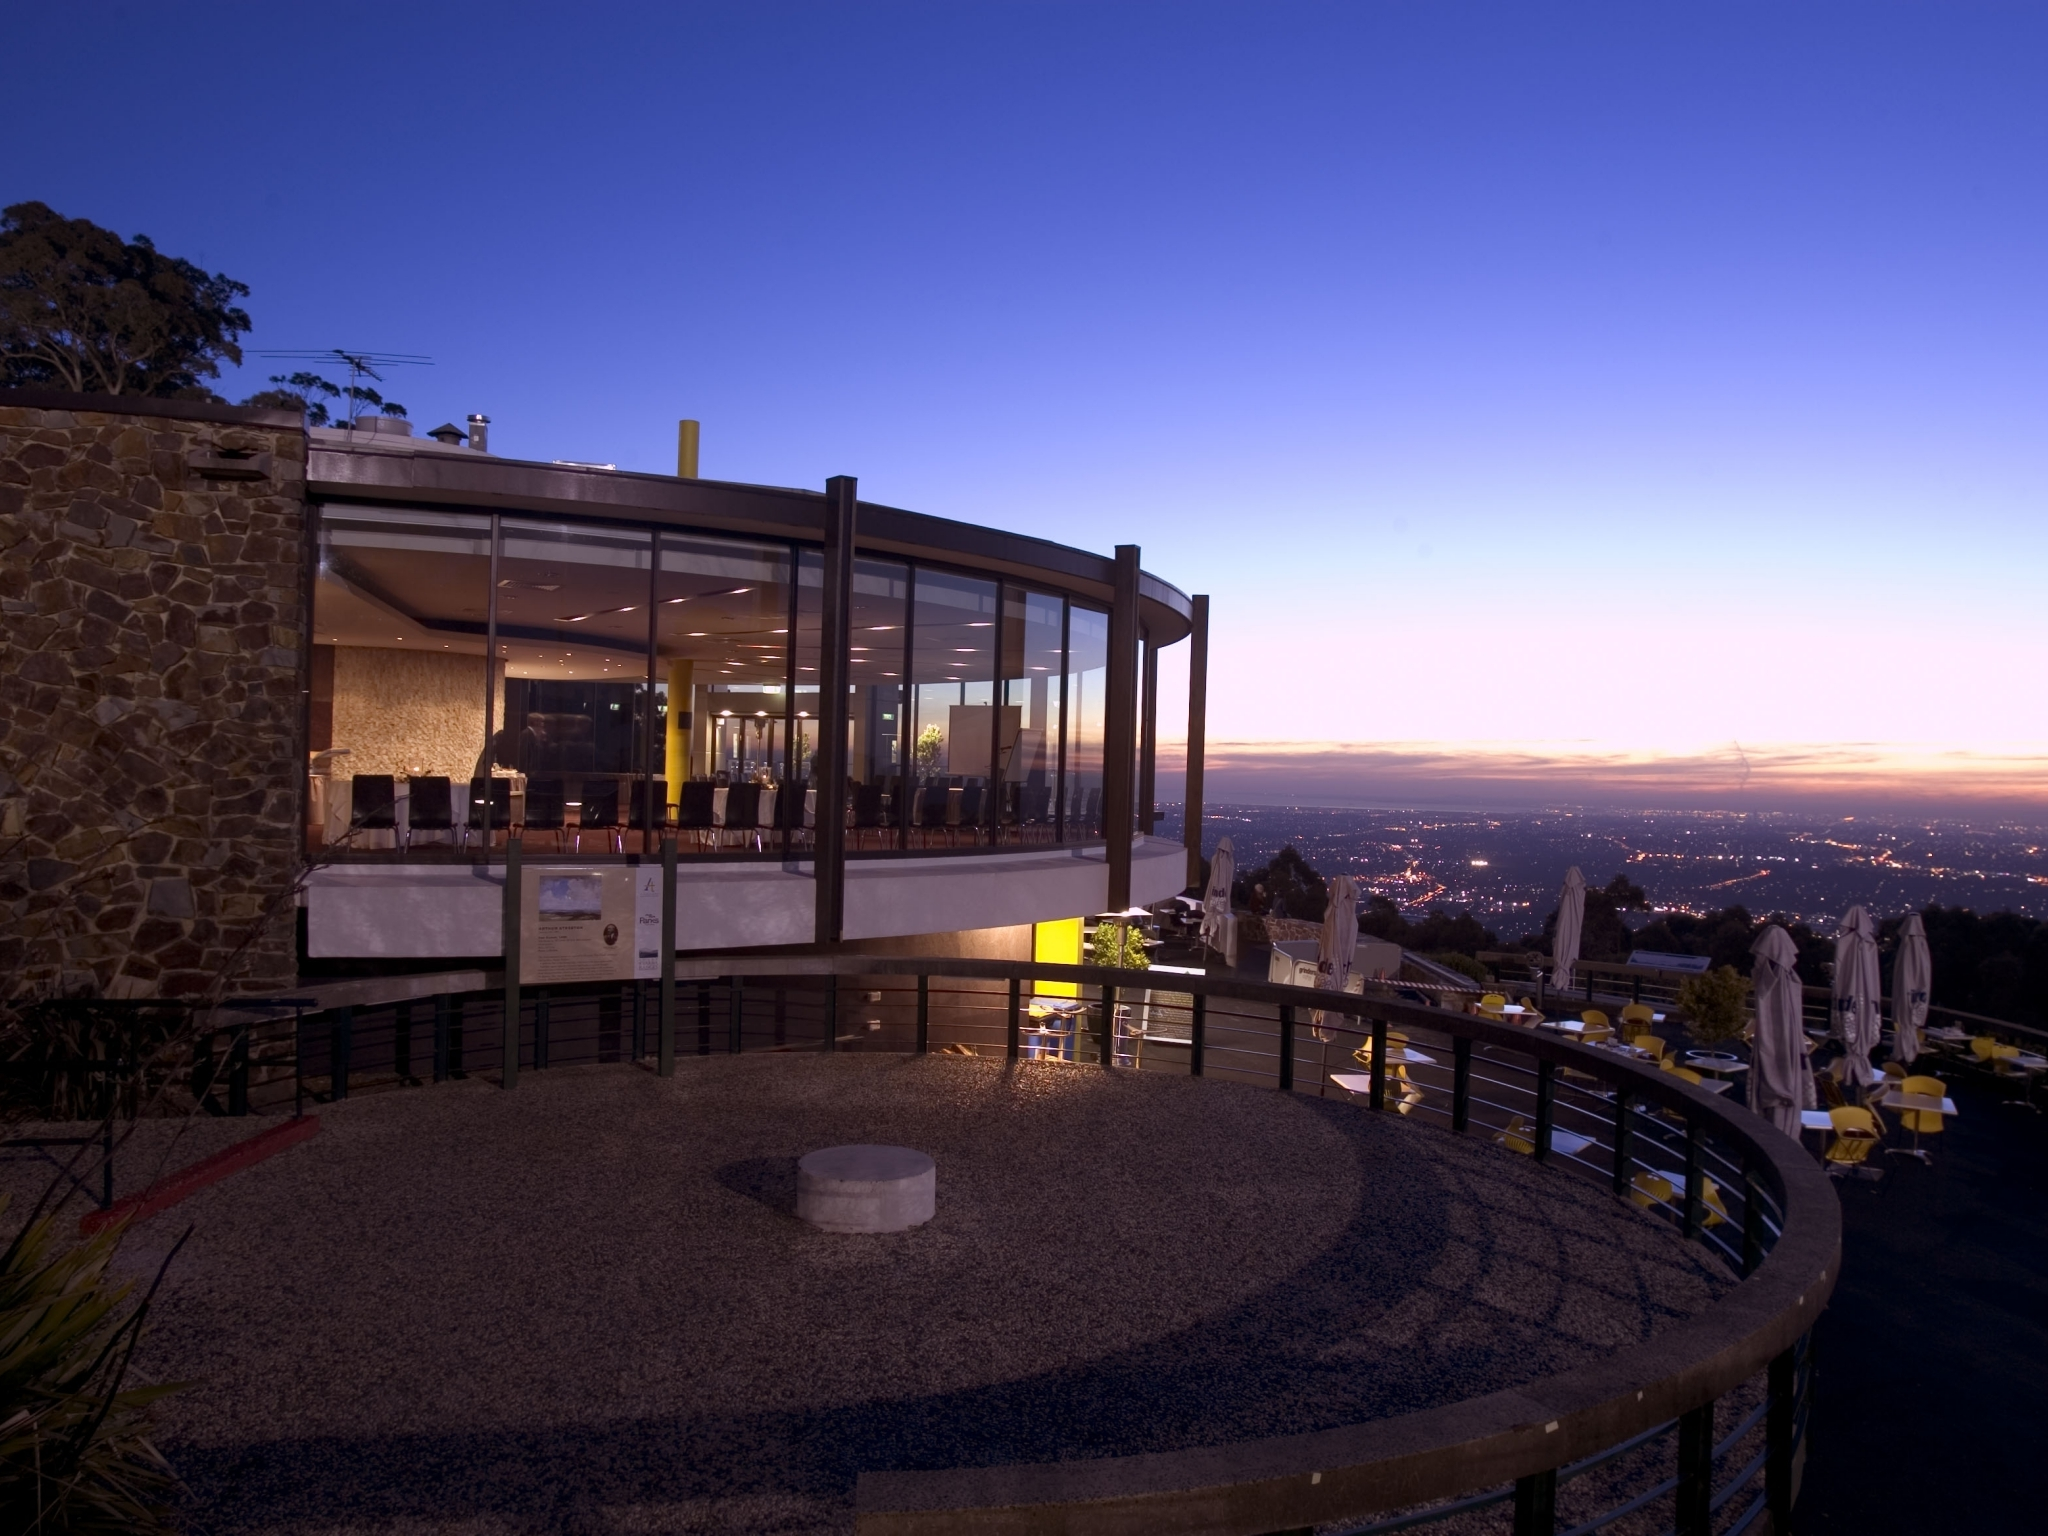 SkyHigh Mount Dandenong restaurant at night with the city below